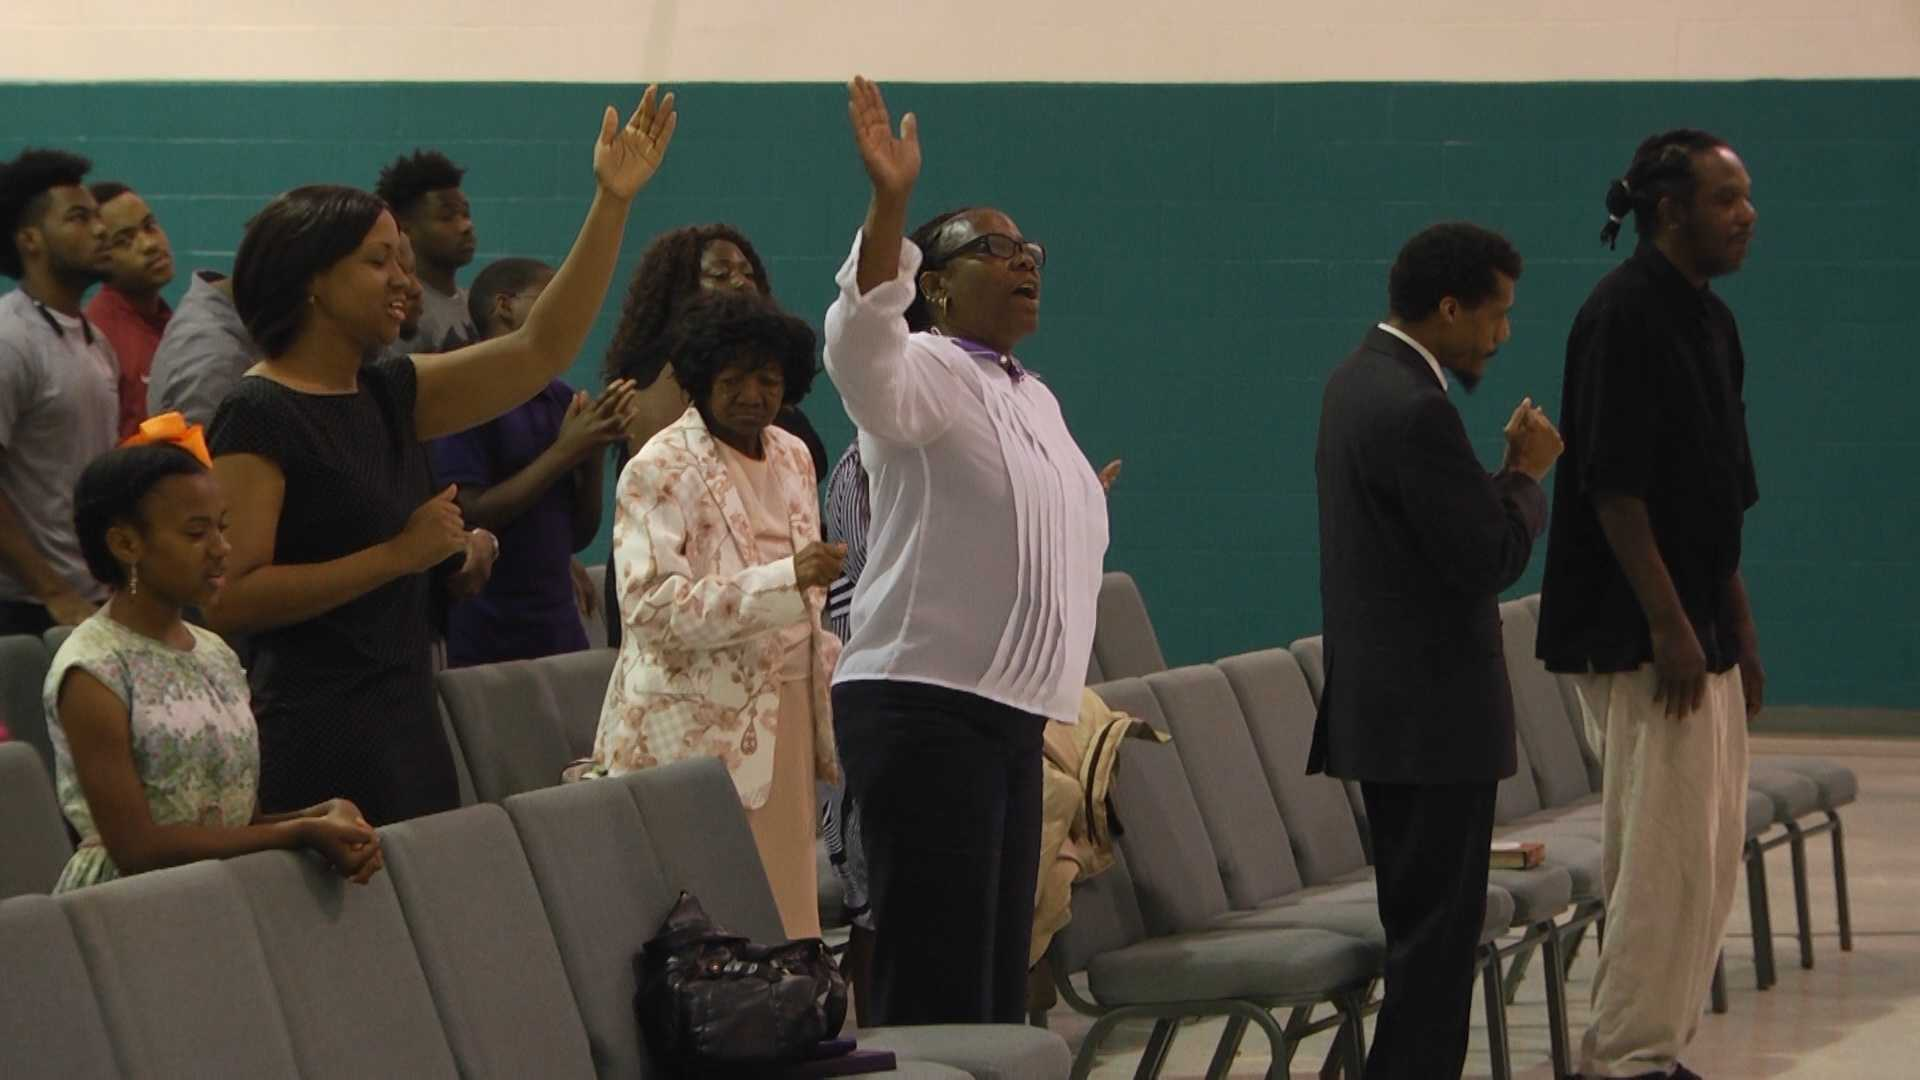 A Birmingham church destroyed by a fire Saturday afternoon has found a new, temporary home in the gymnasium of Christ Temple Deliverance Church in Ensley.